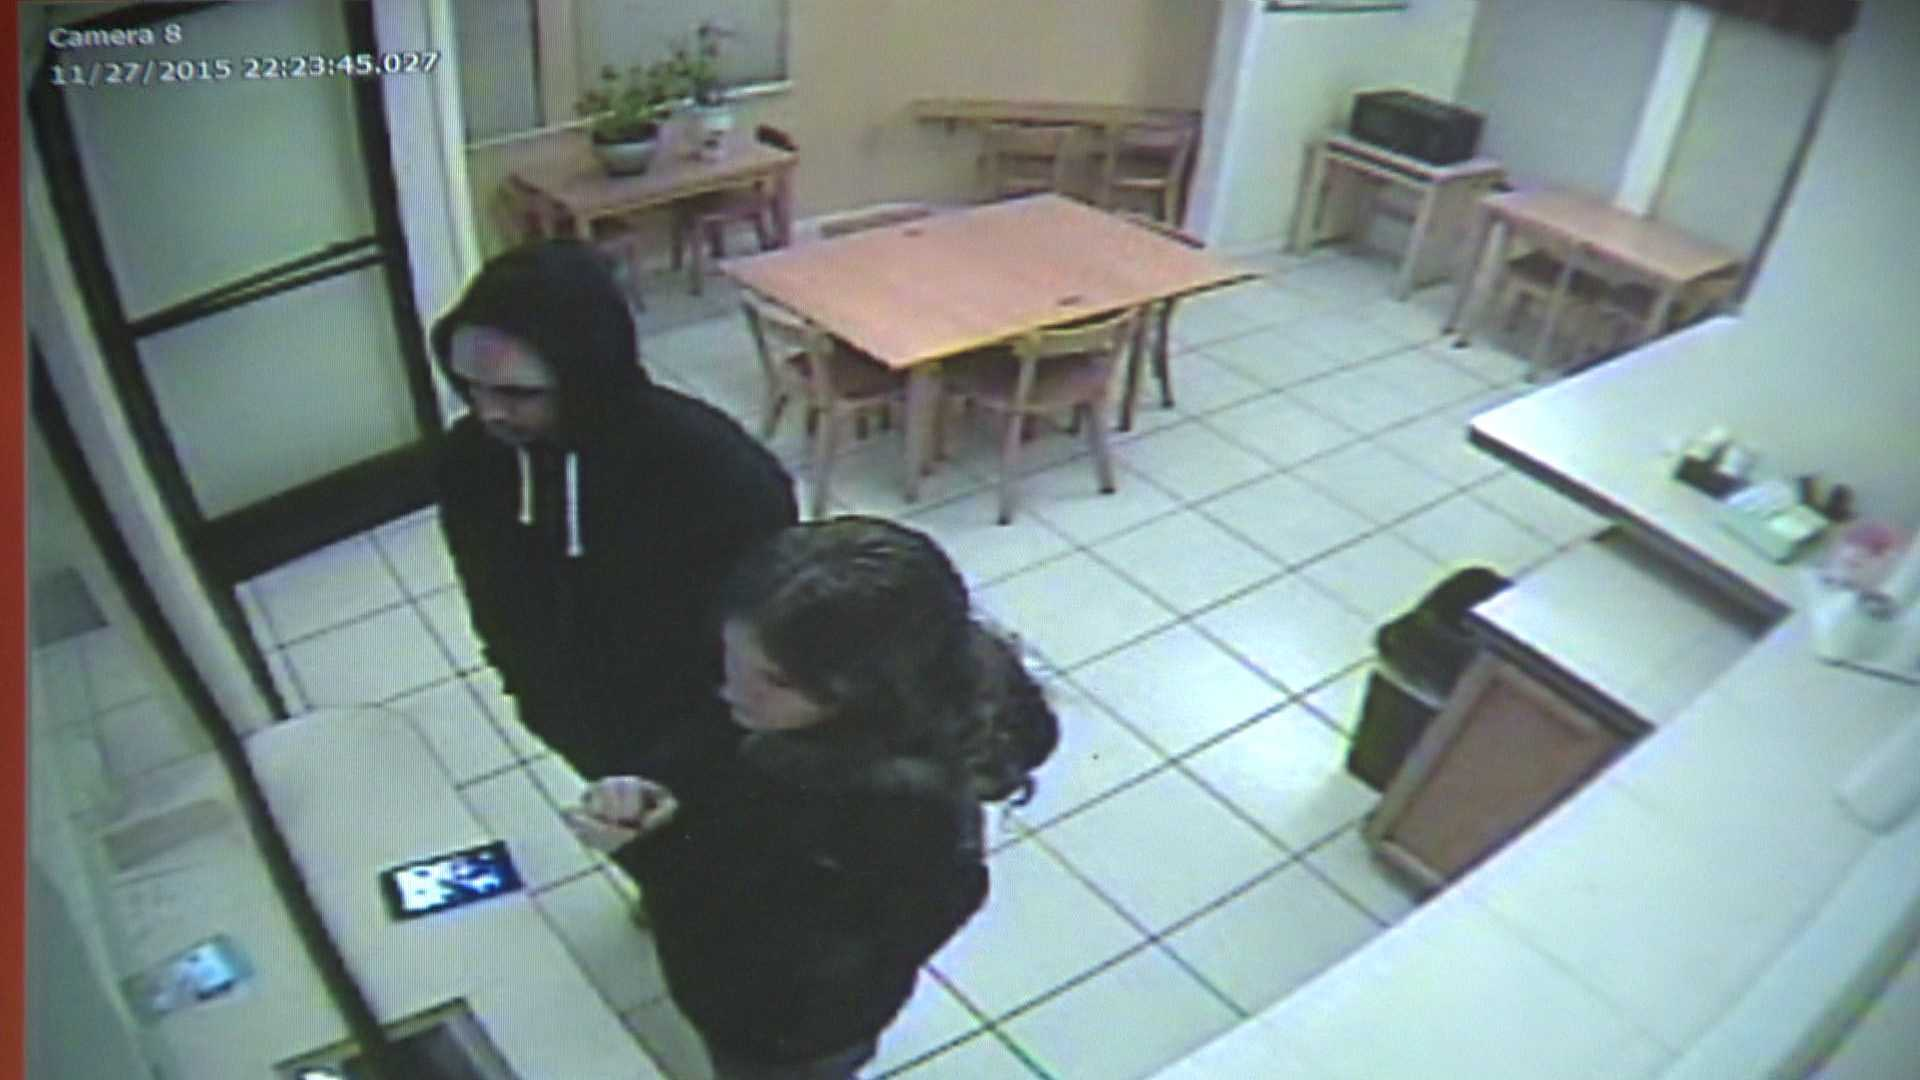 Surveillance video from Motel 6 in Dunnigan shows Gonzalo Curiel and Tami Huntman checking in on Nov. 27.